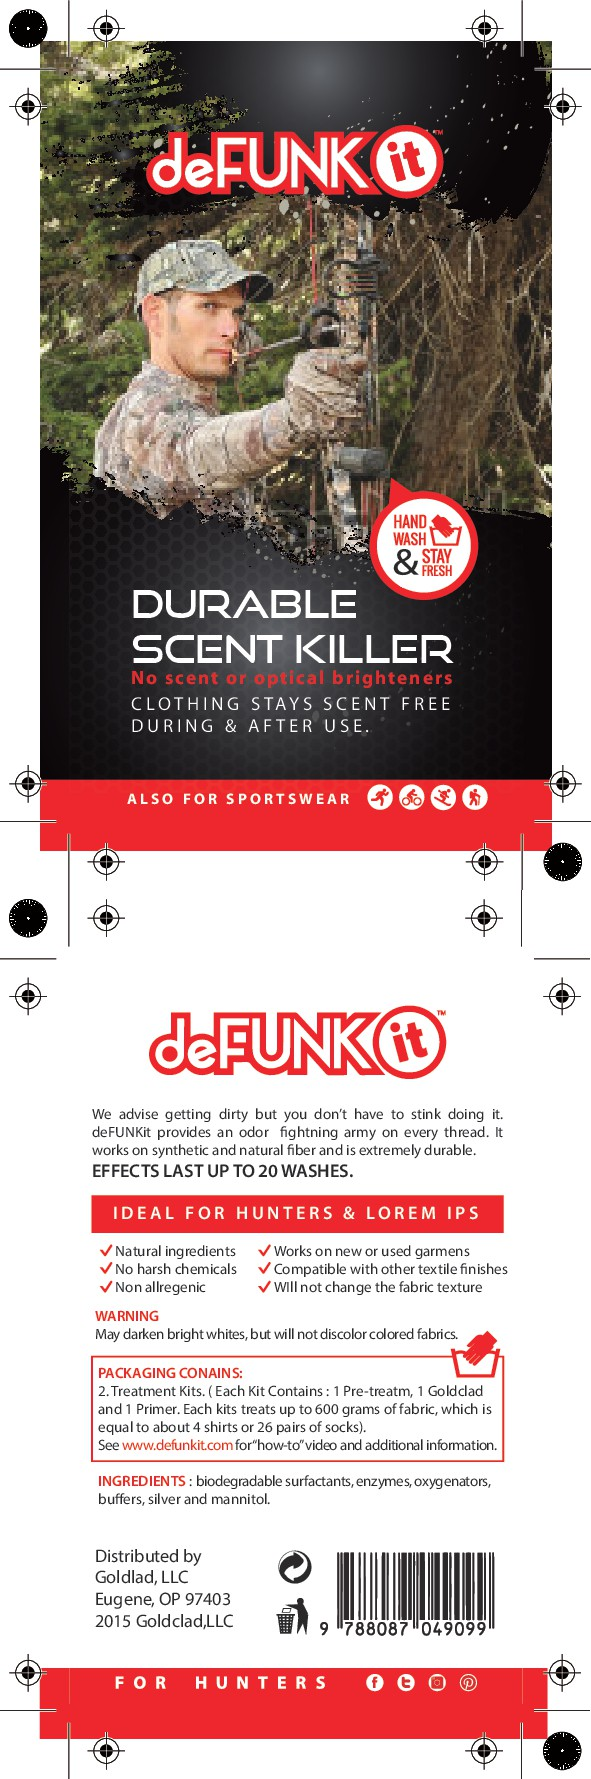 New deFUNKit product Label targeted at hunters